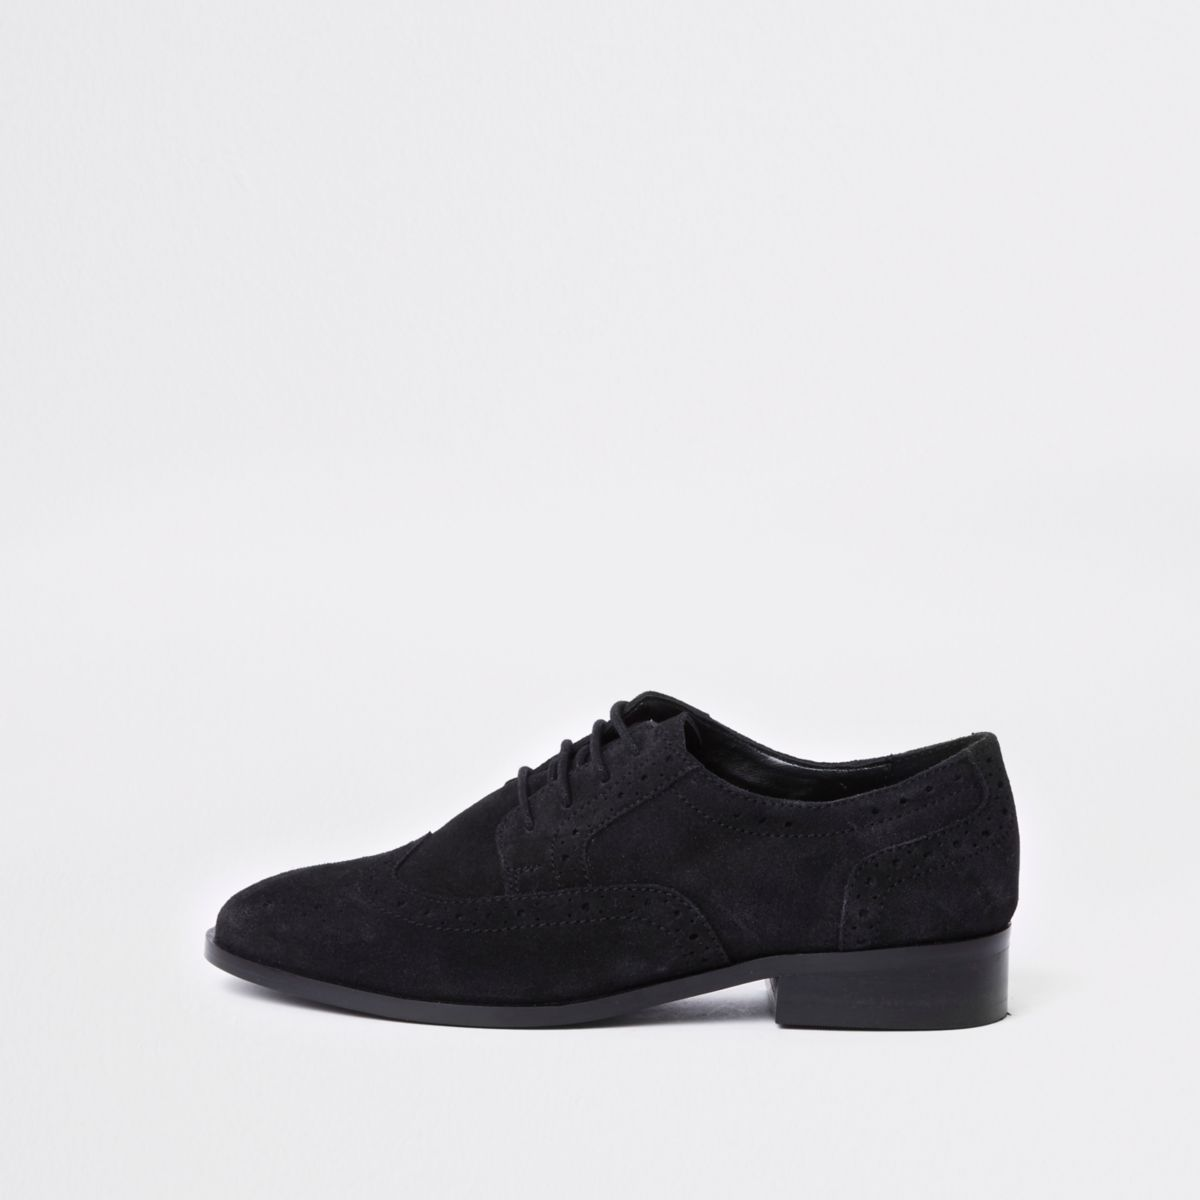 Black suede lace up brogues